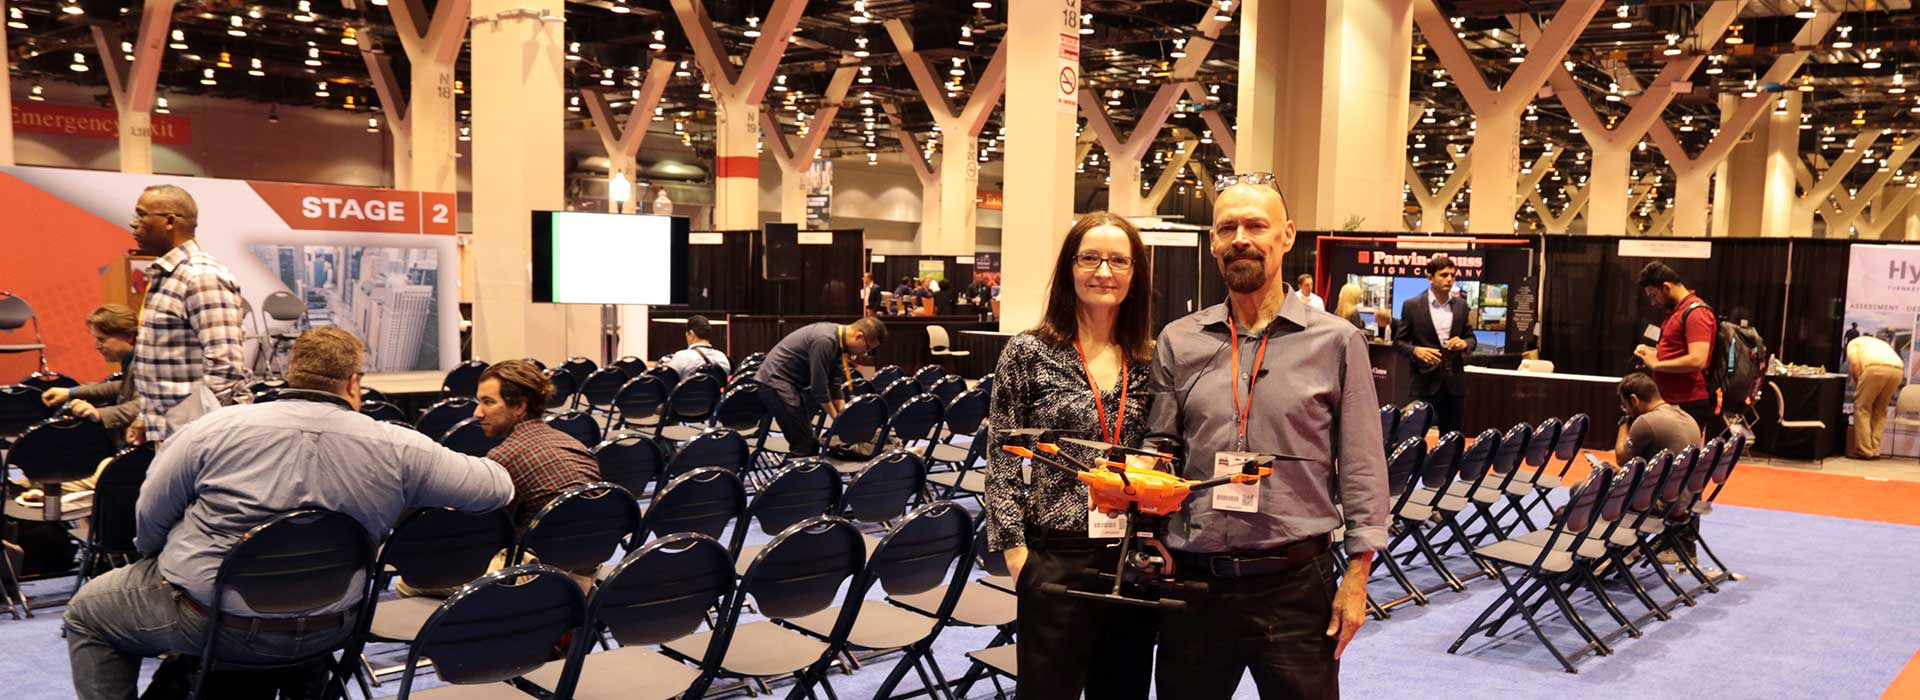 Helen Pukszta & Steve Akins at Chicago Build 2019 Expo at McCormick Place